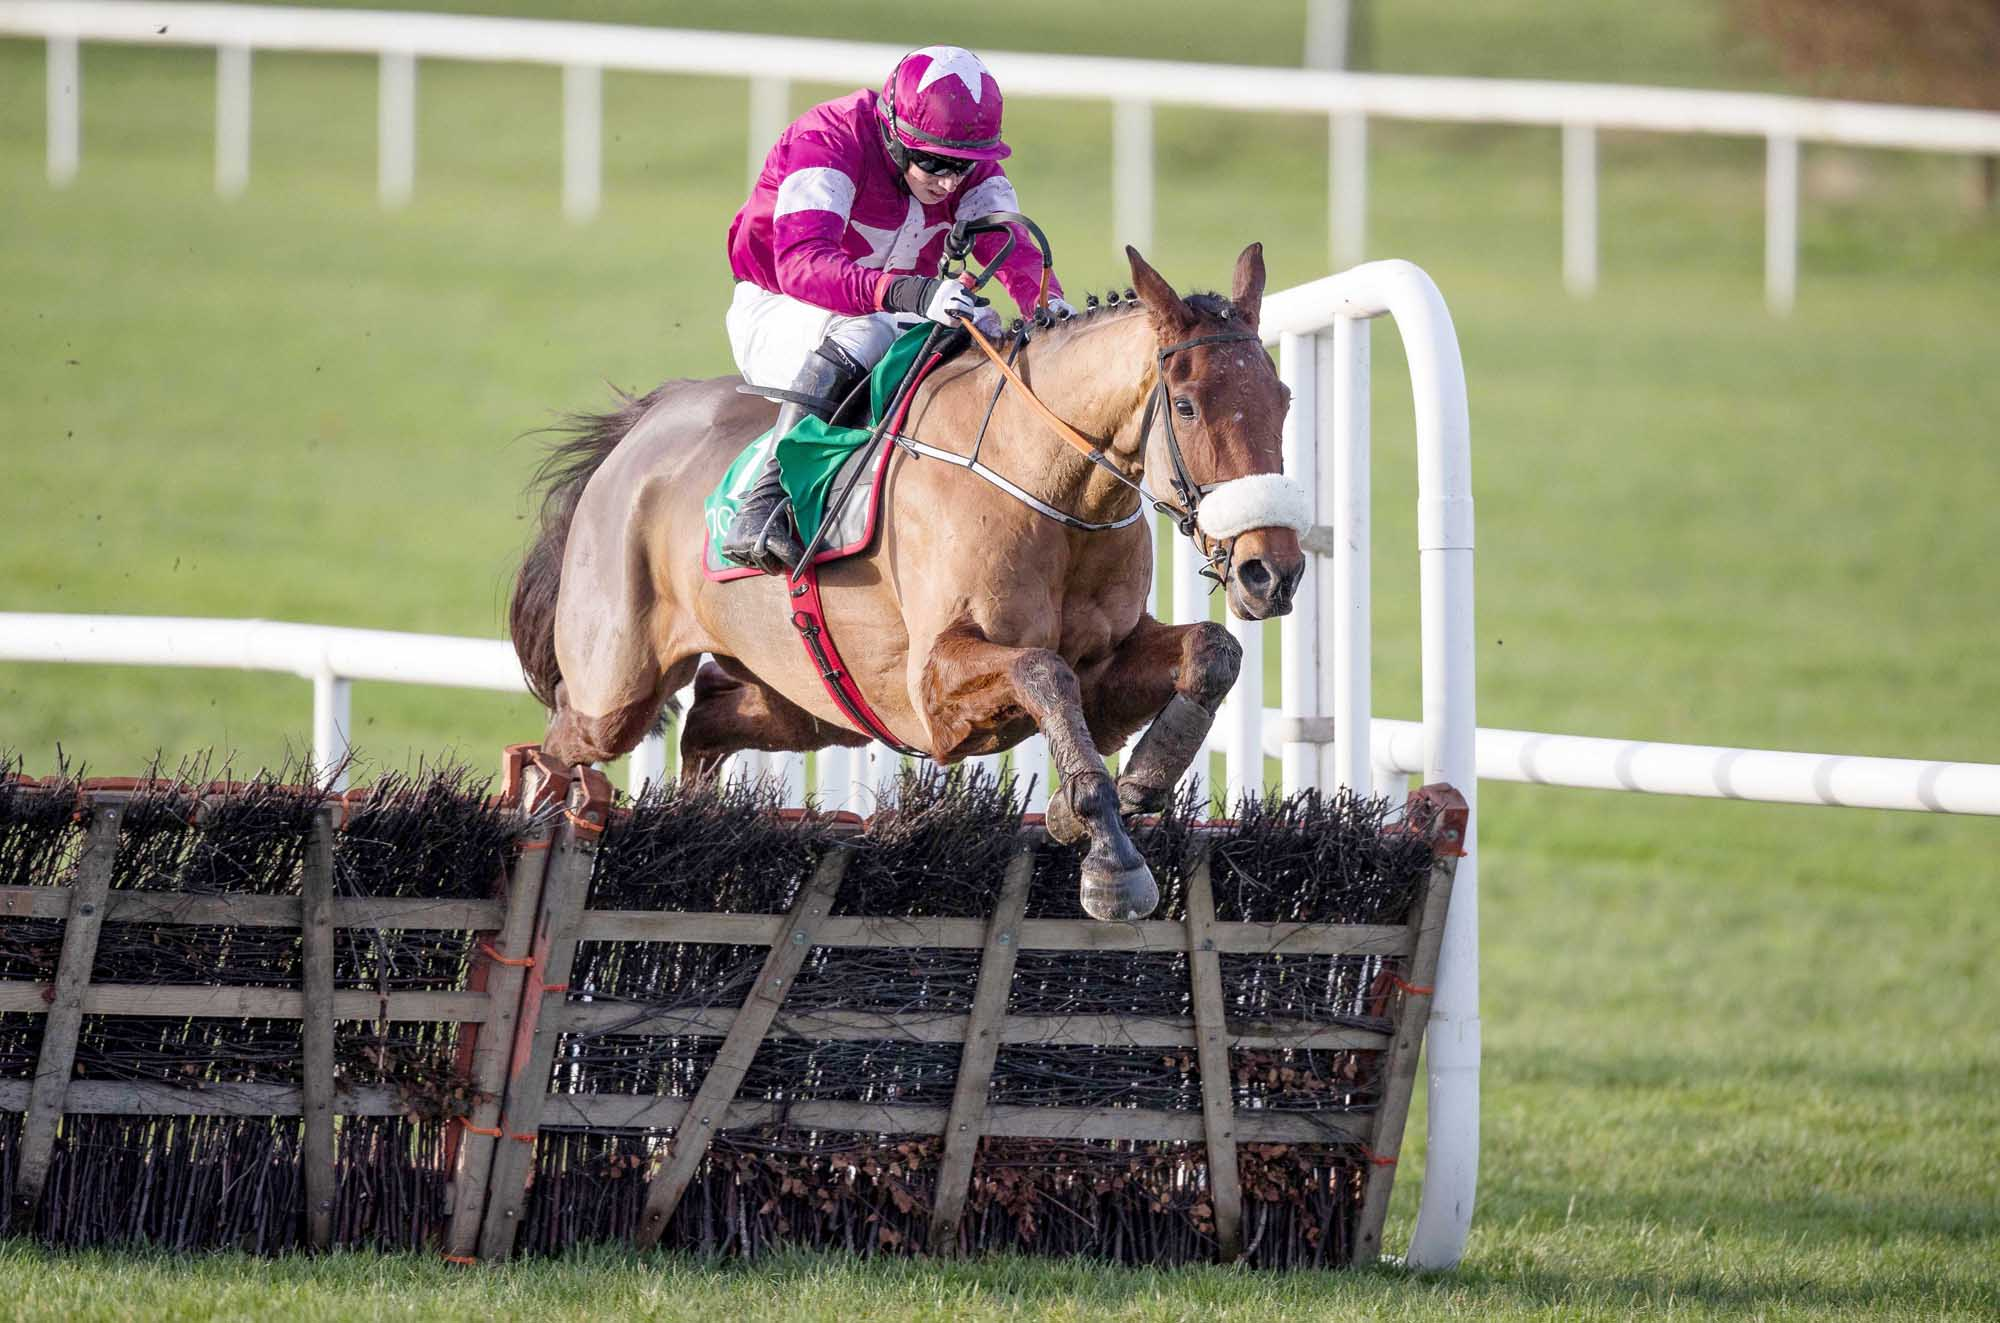 BIGRACE:  Death Duty is 1/2 to win the Lawlors Hotel Hurdle at Naas on Sunday to make it four wins on the bounce, but keep an eye out for Turcagua who looks value at 3/1 for the Mullins yard